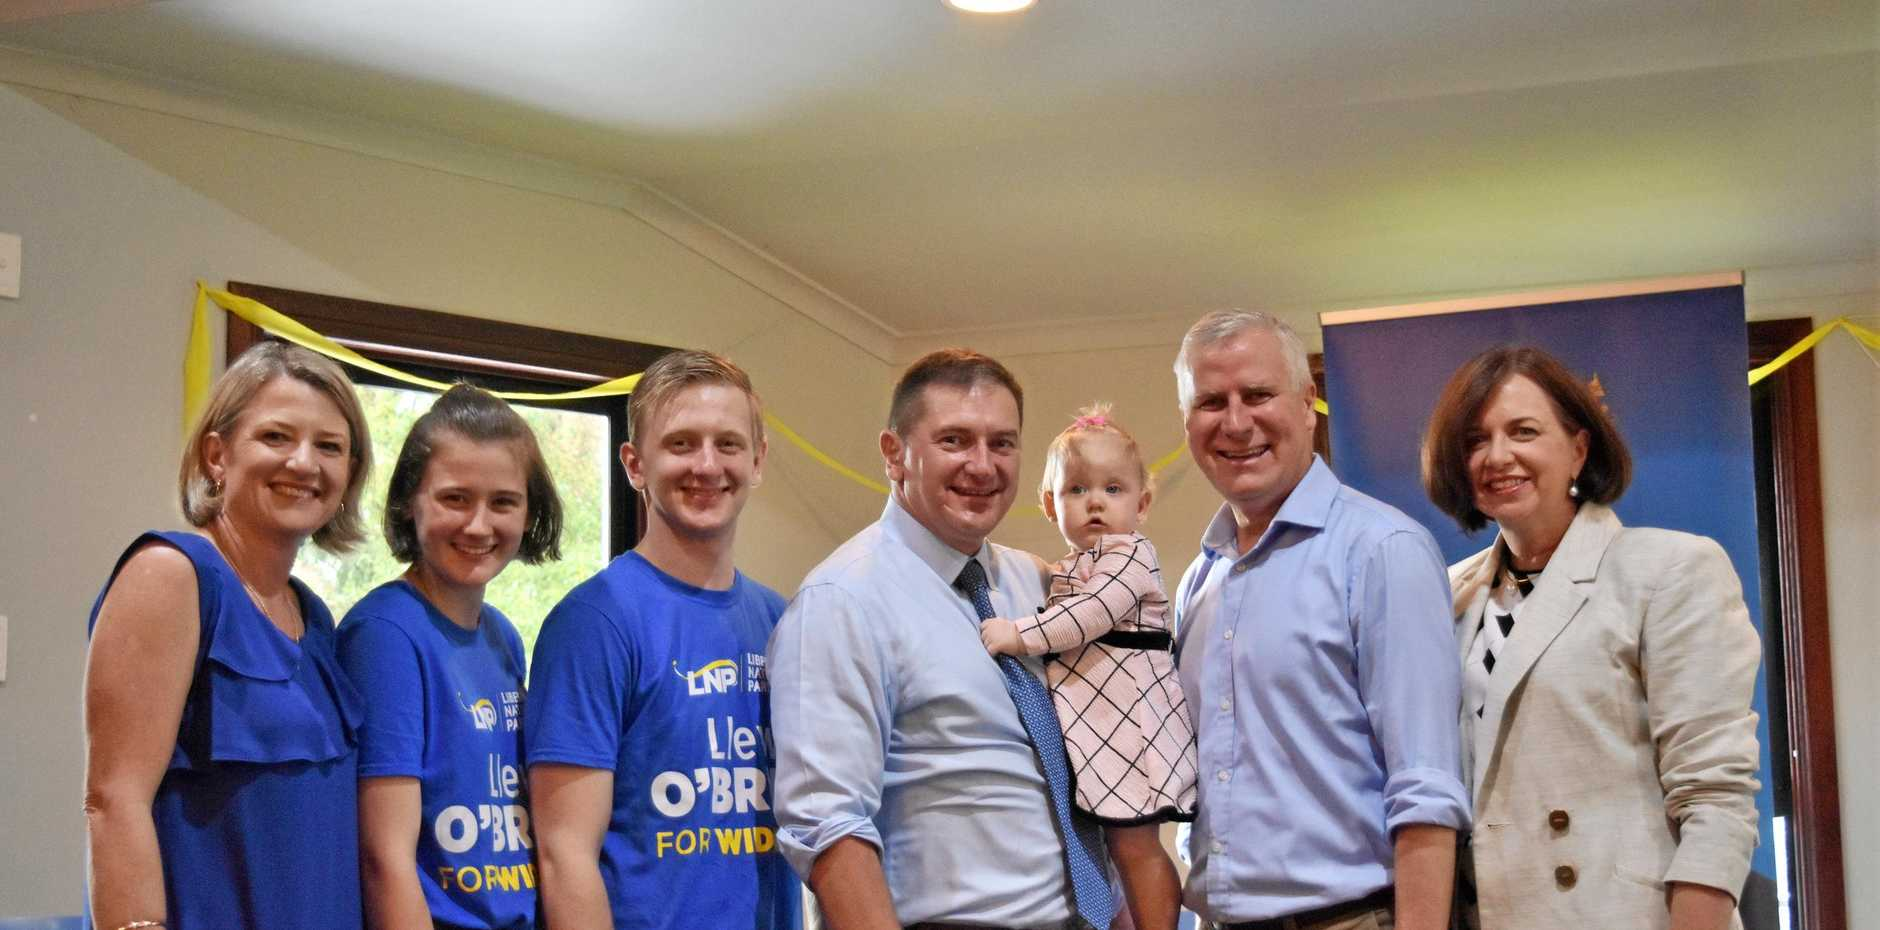 Sharon O'Brien, Yve O'Brien, Rees O'Brien, Llew O'Brien, Deputy PM Michael McCormack and Catherine McCormack.